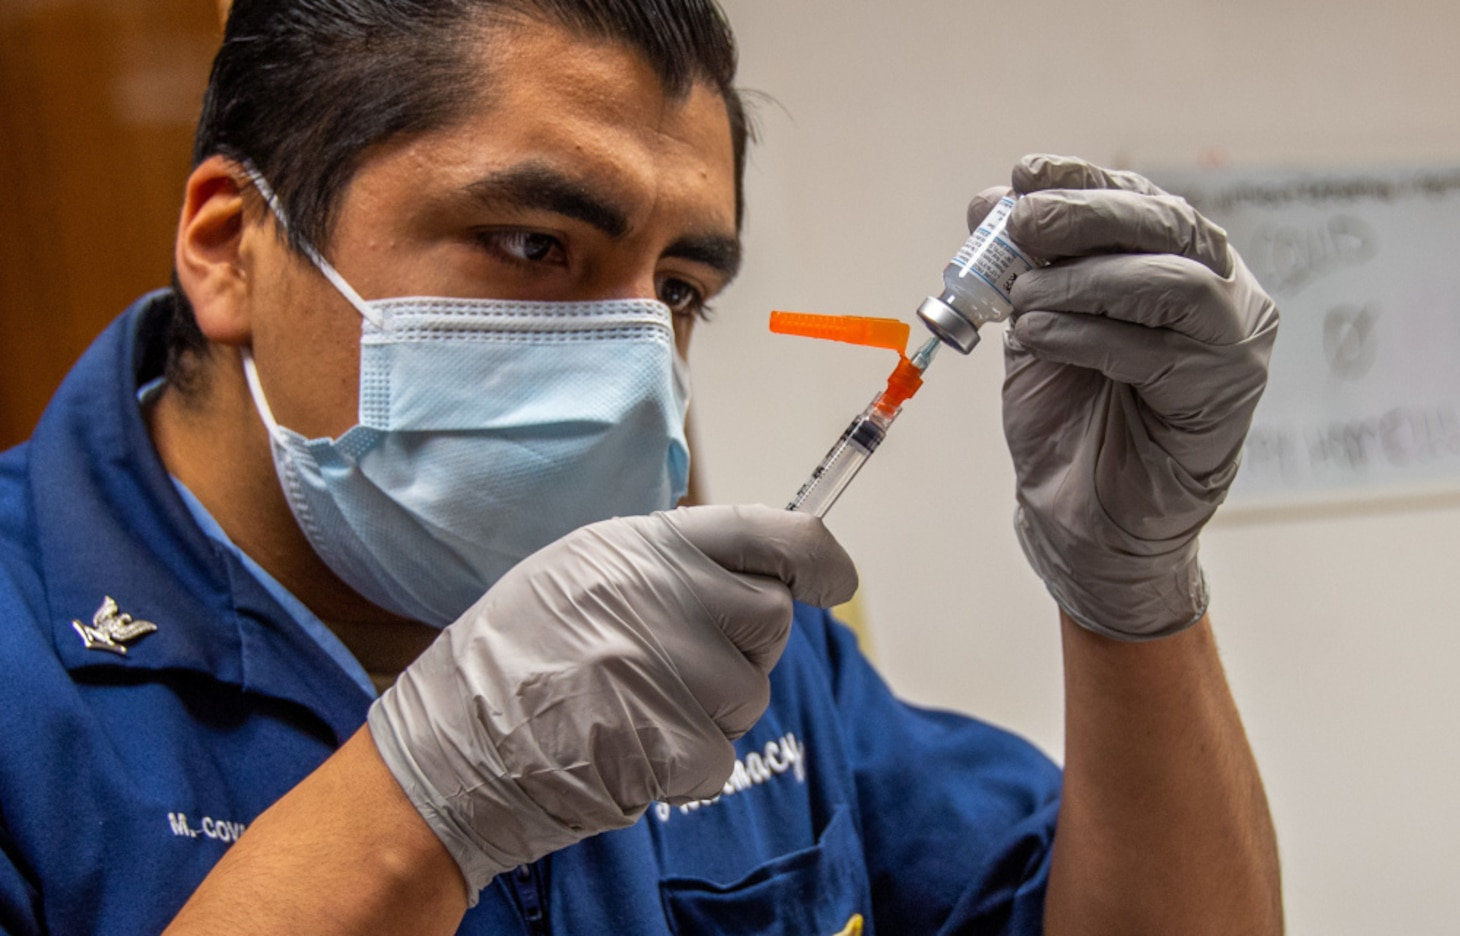 NAVAL STATION ROTA, Spain (Jan. 15, 2021) Hospital Corpsman 3rd Class Martin Covarrubias draws vaccine into a syringe from a vial from the first coronavirus (COVID-19) vaccine shipment to U.S. Naval Hospital (USNH) Rota, Spain on 15 January, 2021. The vaccine will be administered in phases based on priority levels to reduce the burden of COVID-19 in high-risk populations and simultaneously mitigate risk to military operations. (U.S. Navy photo by Mass Communication Specialist 1st Class Nathan Carpenter)